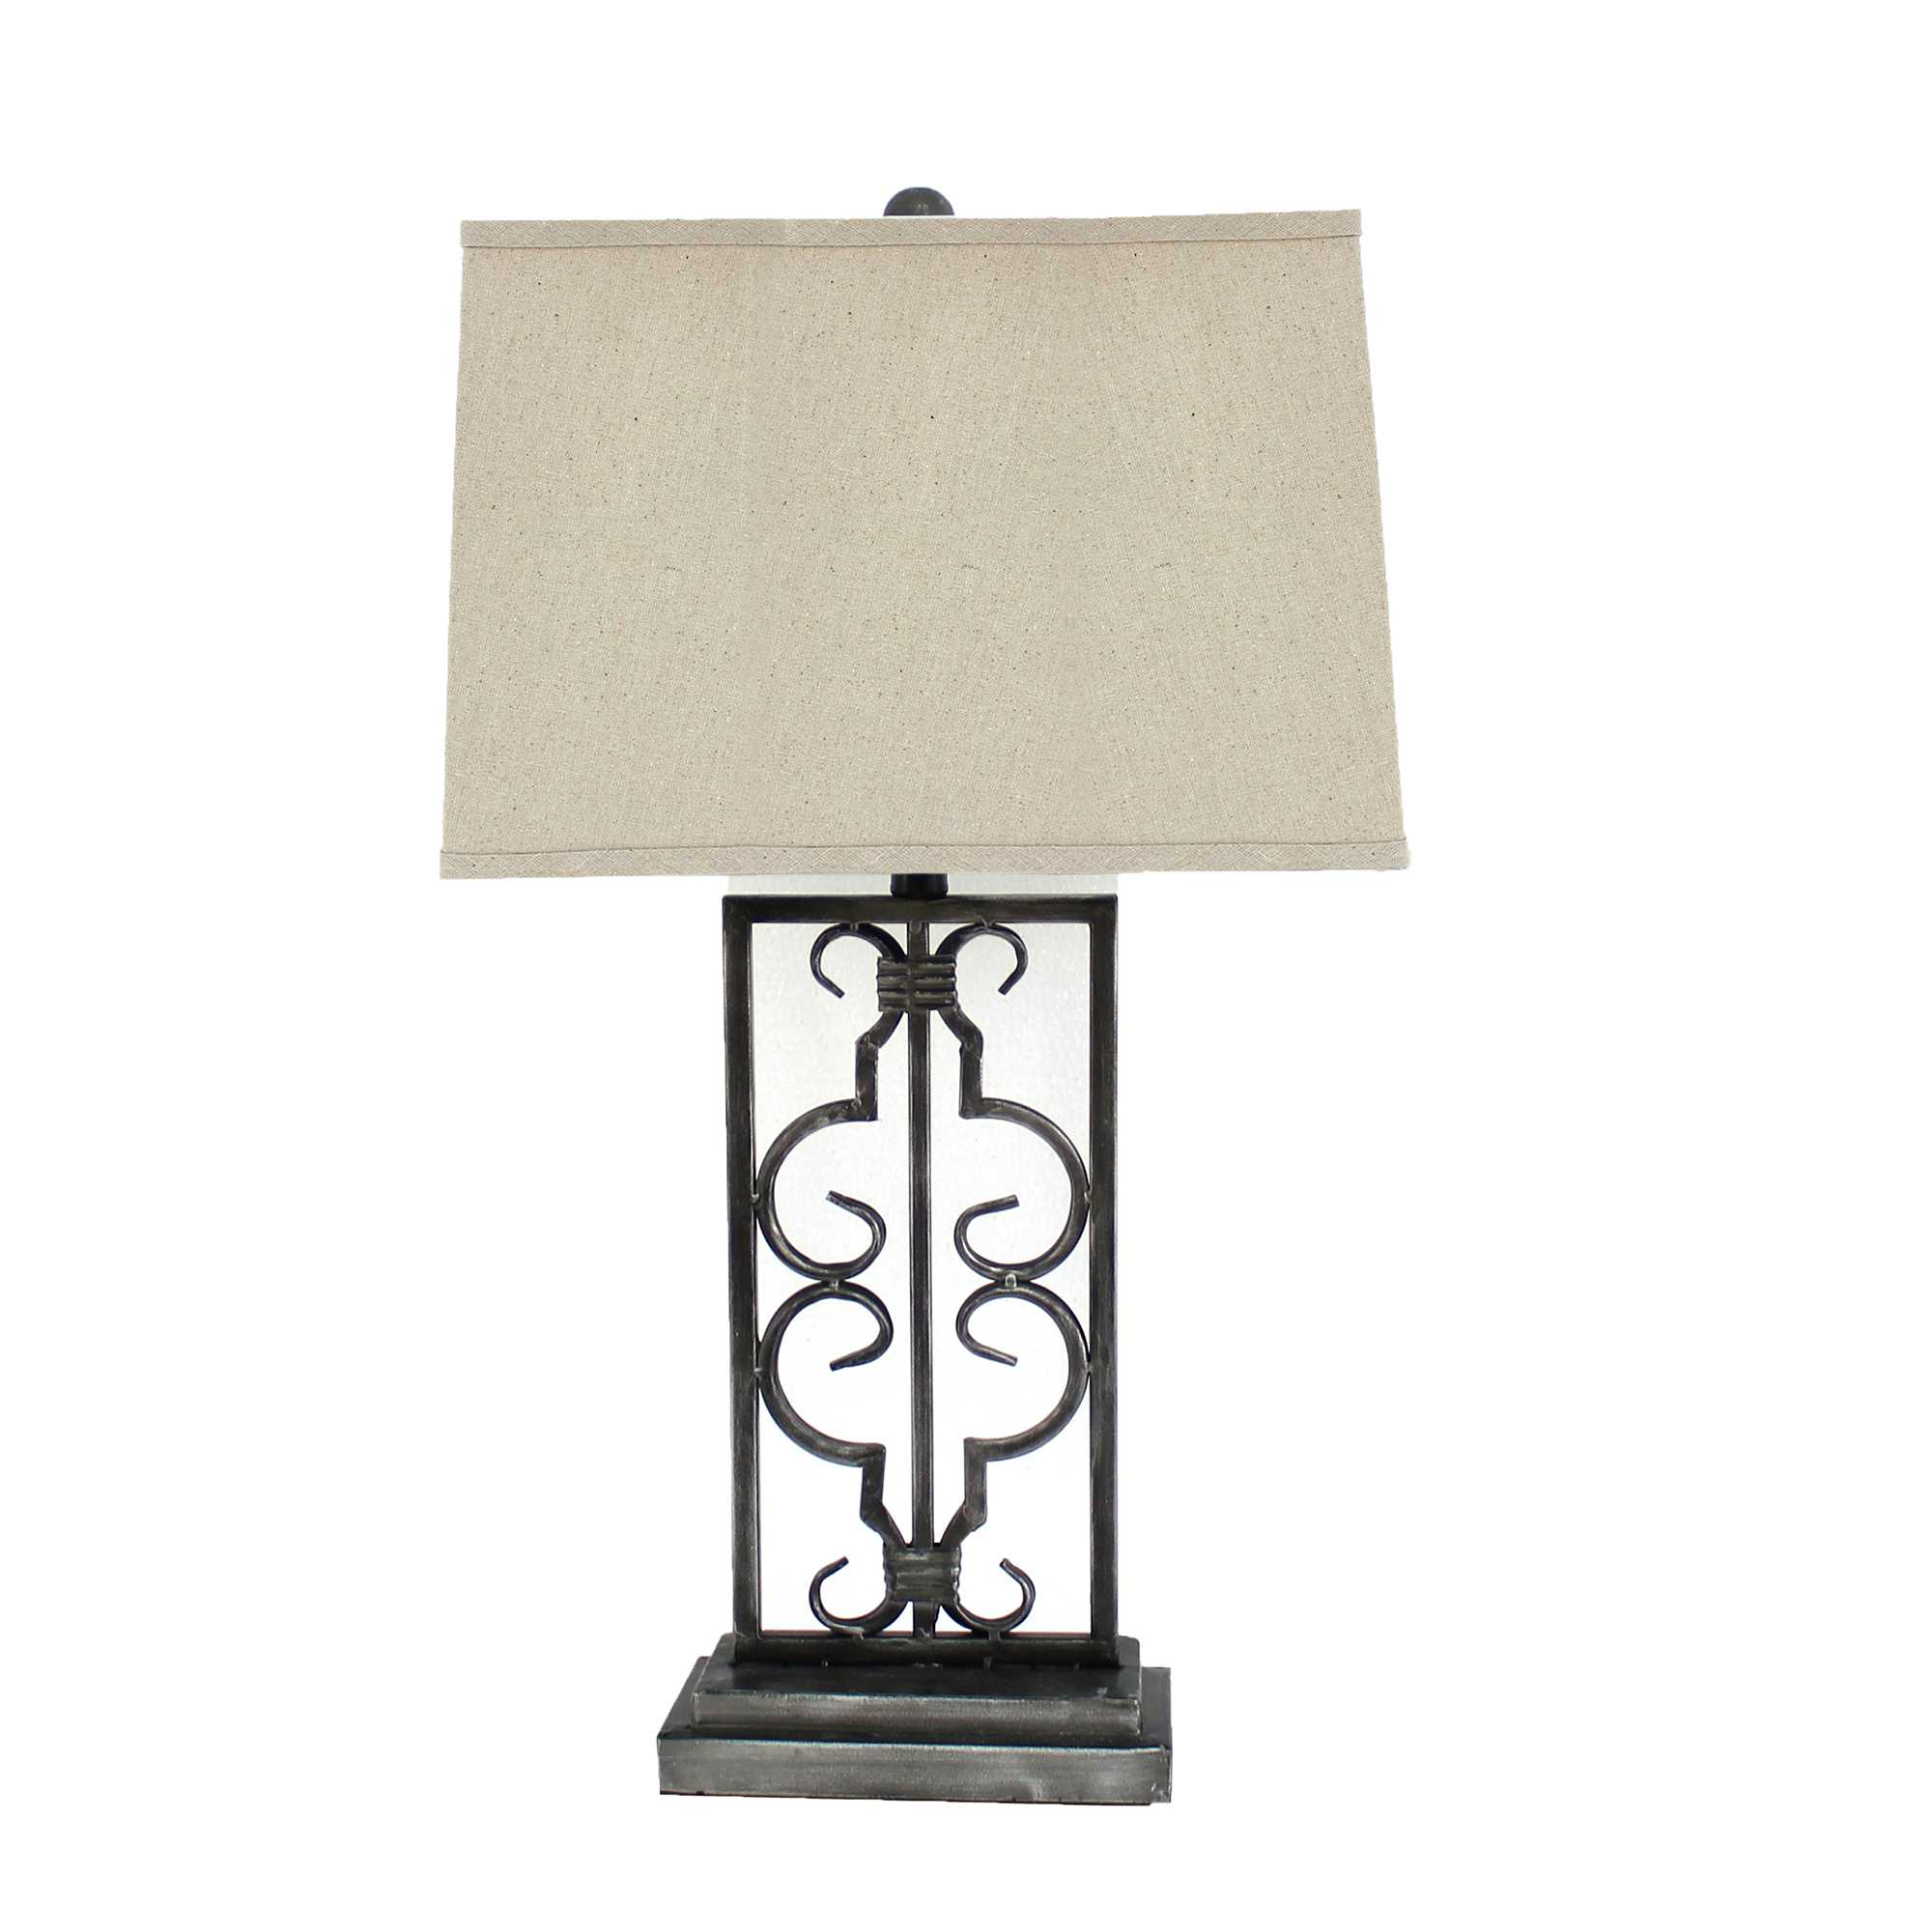 "29"" X 28"" X 8"" Gray Industrial Table Lamp With Stacked Metal Pedestal Set of 2"